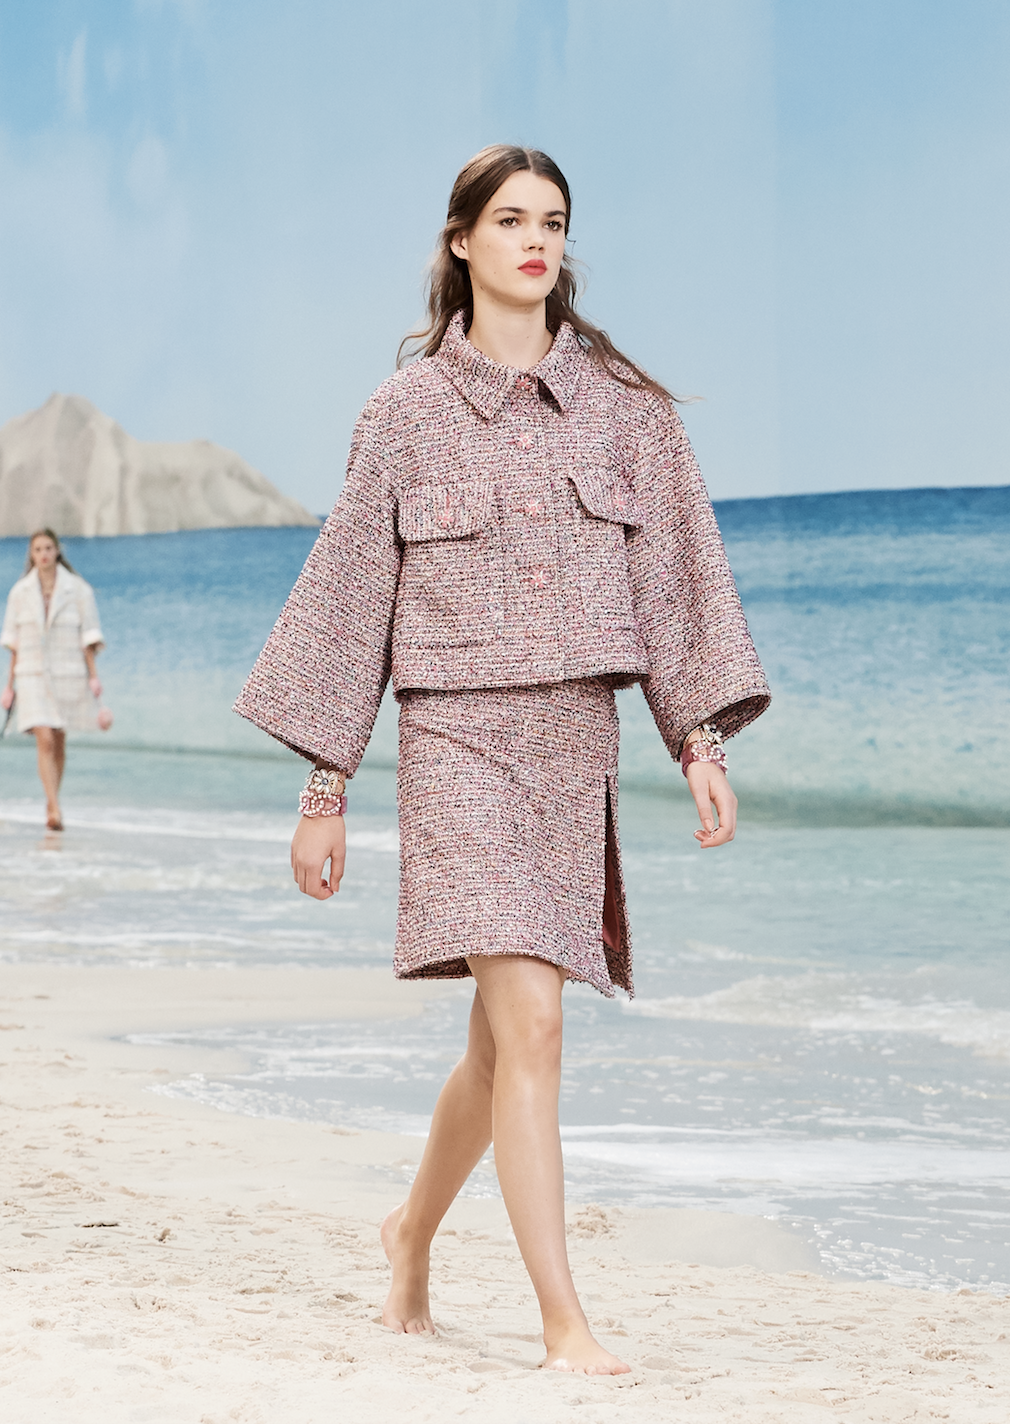 CHANEL SPRING/SUMMER2019 COLLECTION